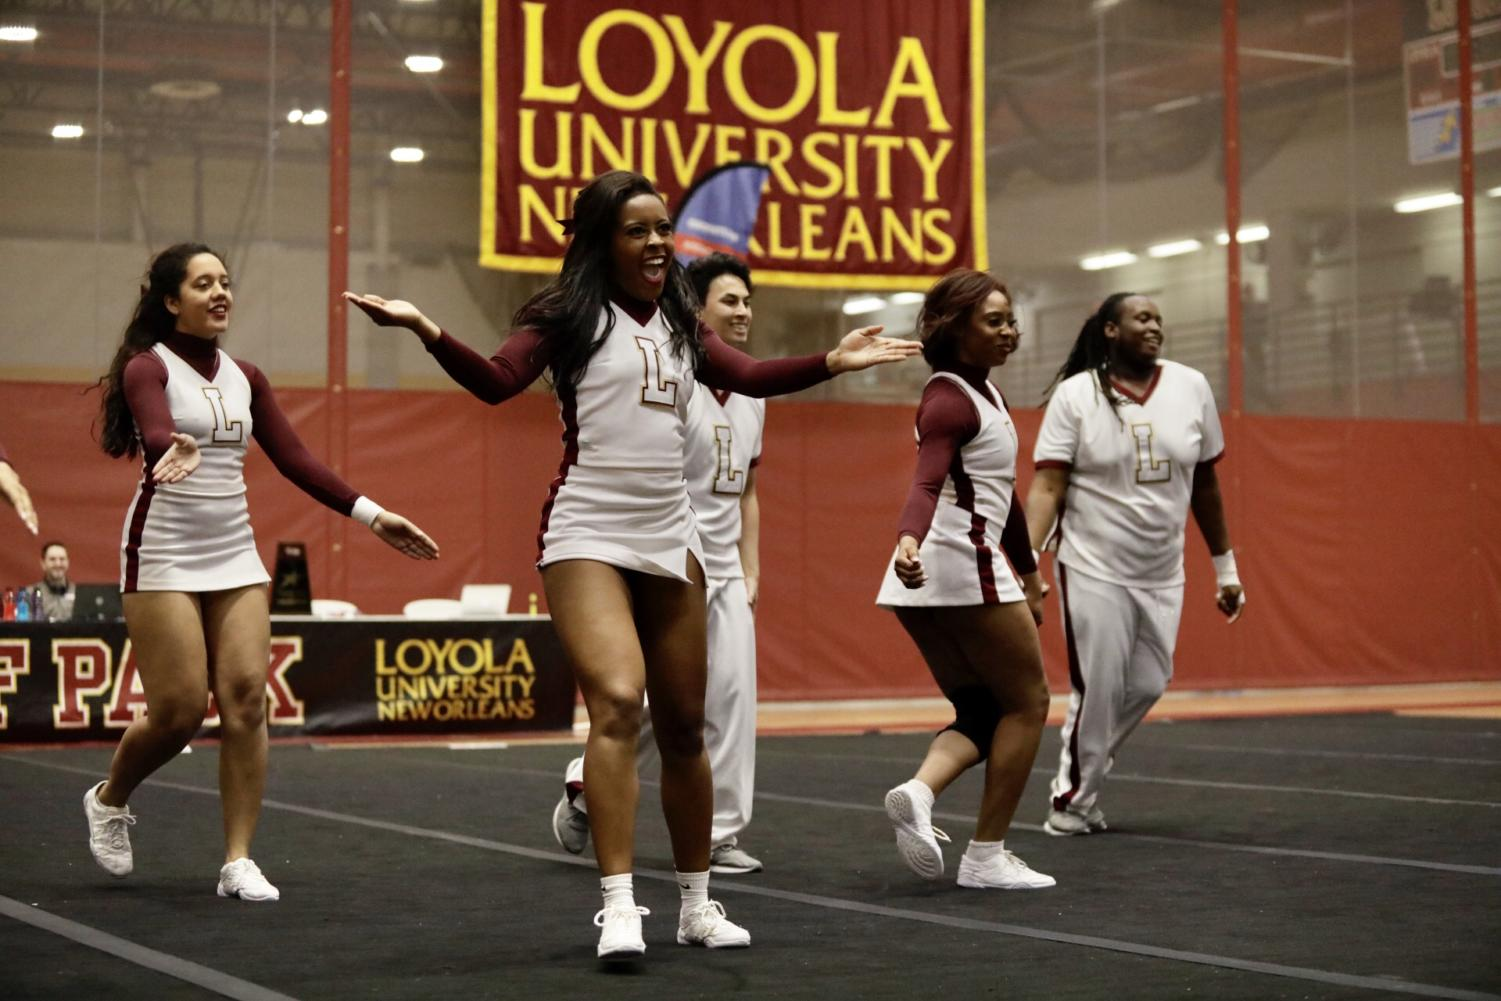 Loyola%27s+cheer+team+hypes+up+the+home+crowd+during+their+routine+in+the+conference+championship.